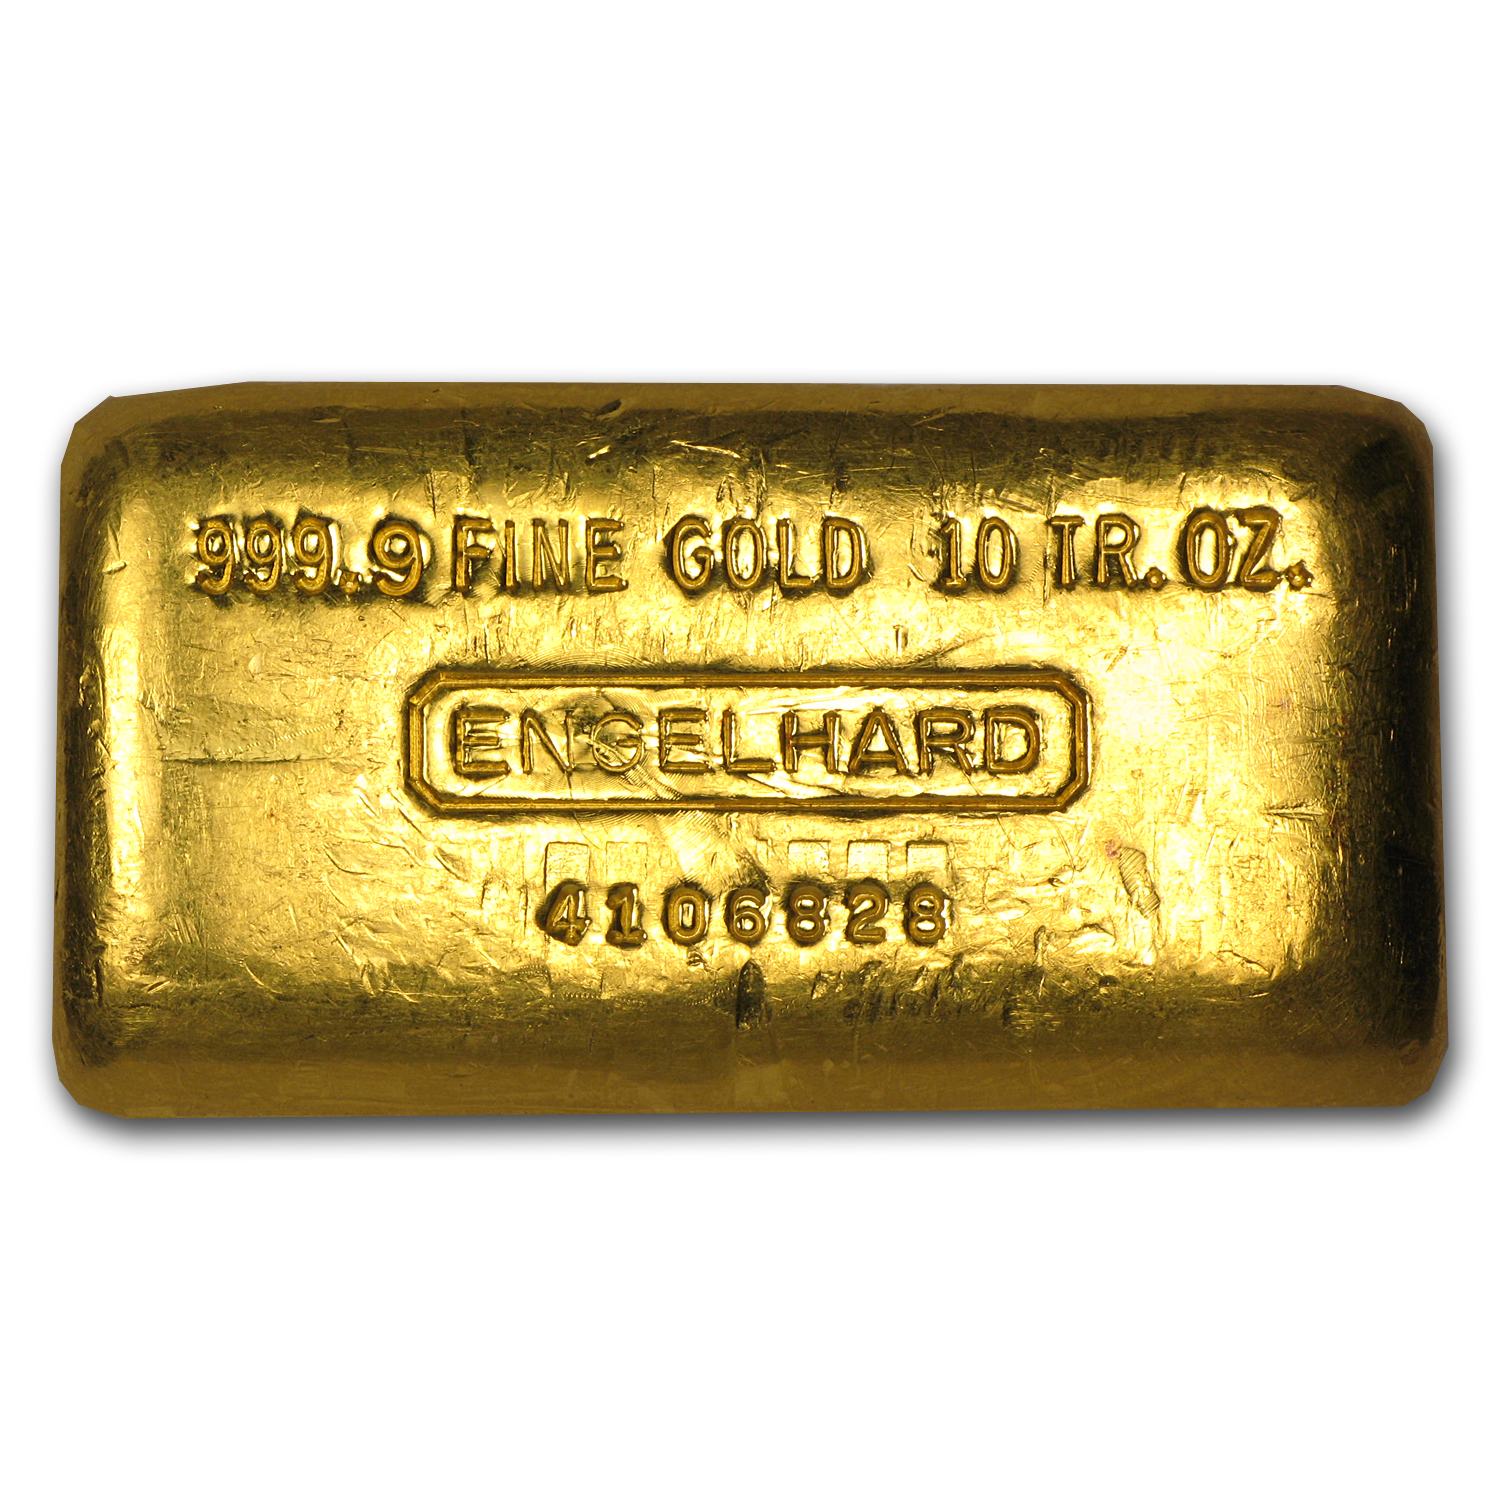 10 oz Gold Bar - Engelhard (Poured/Loaf-Style)